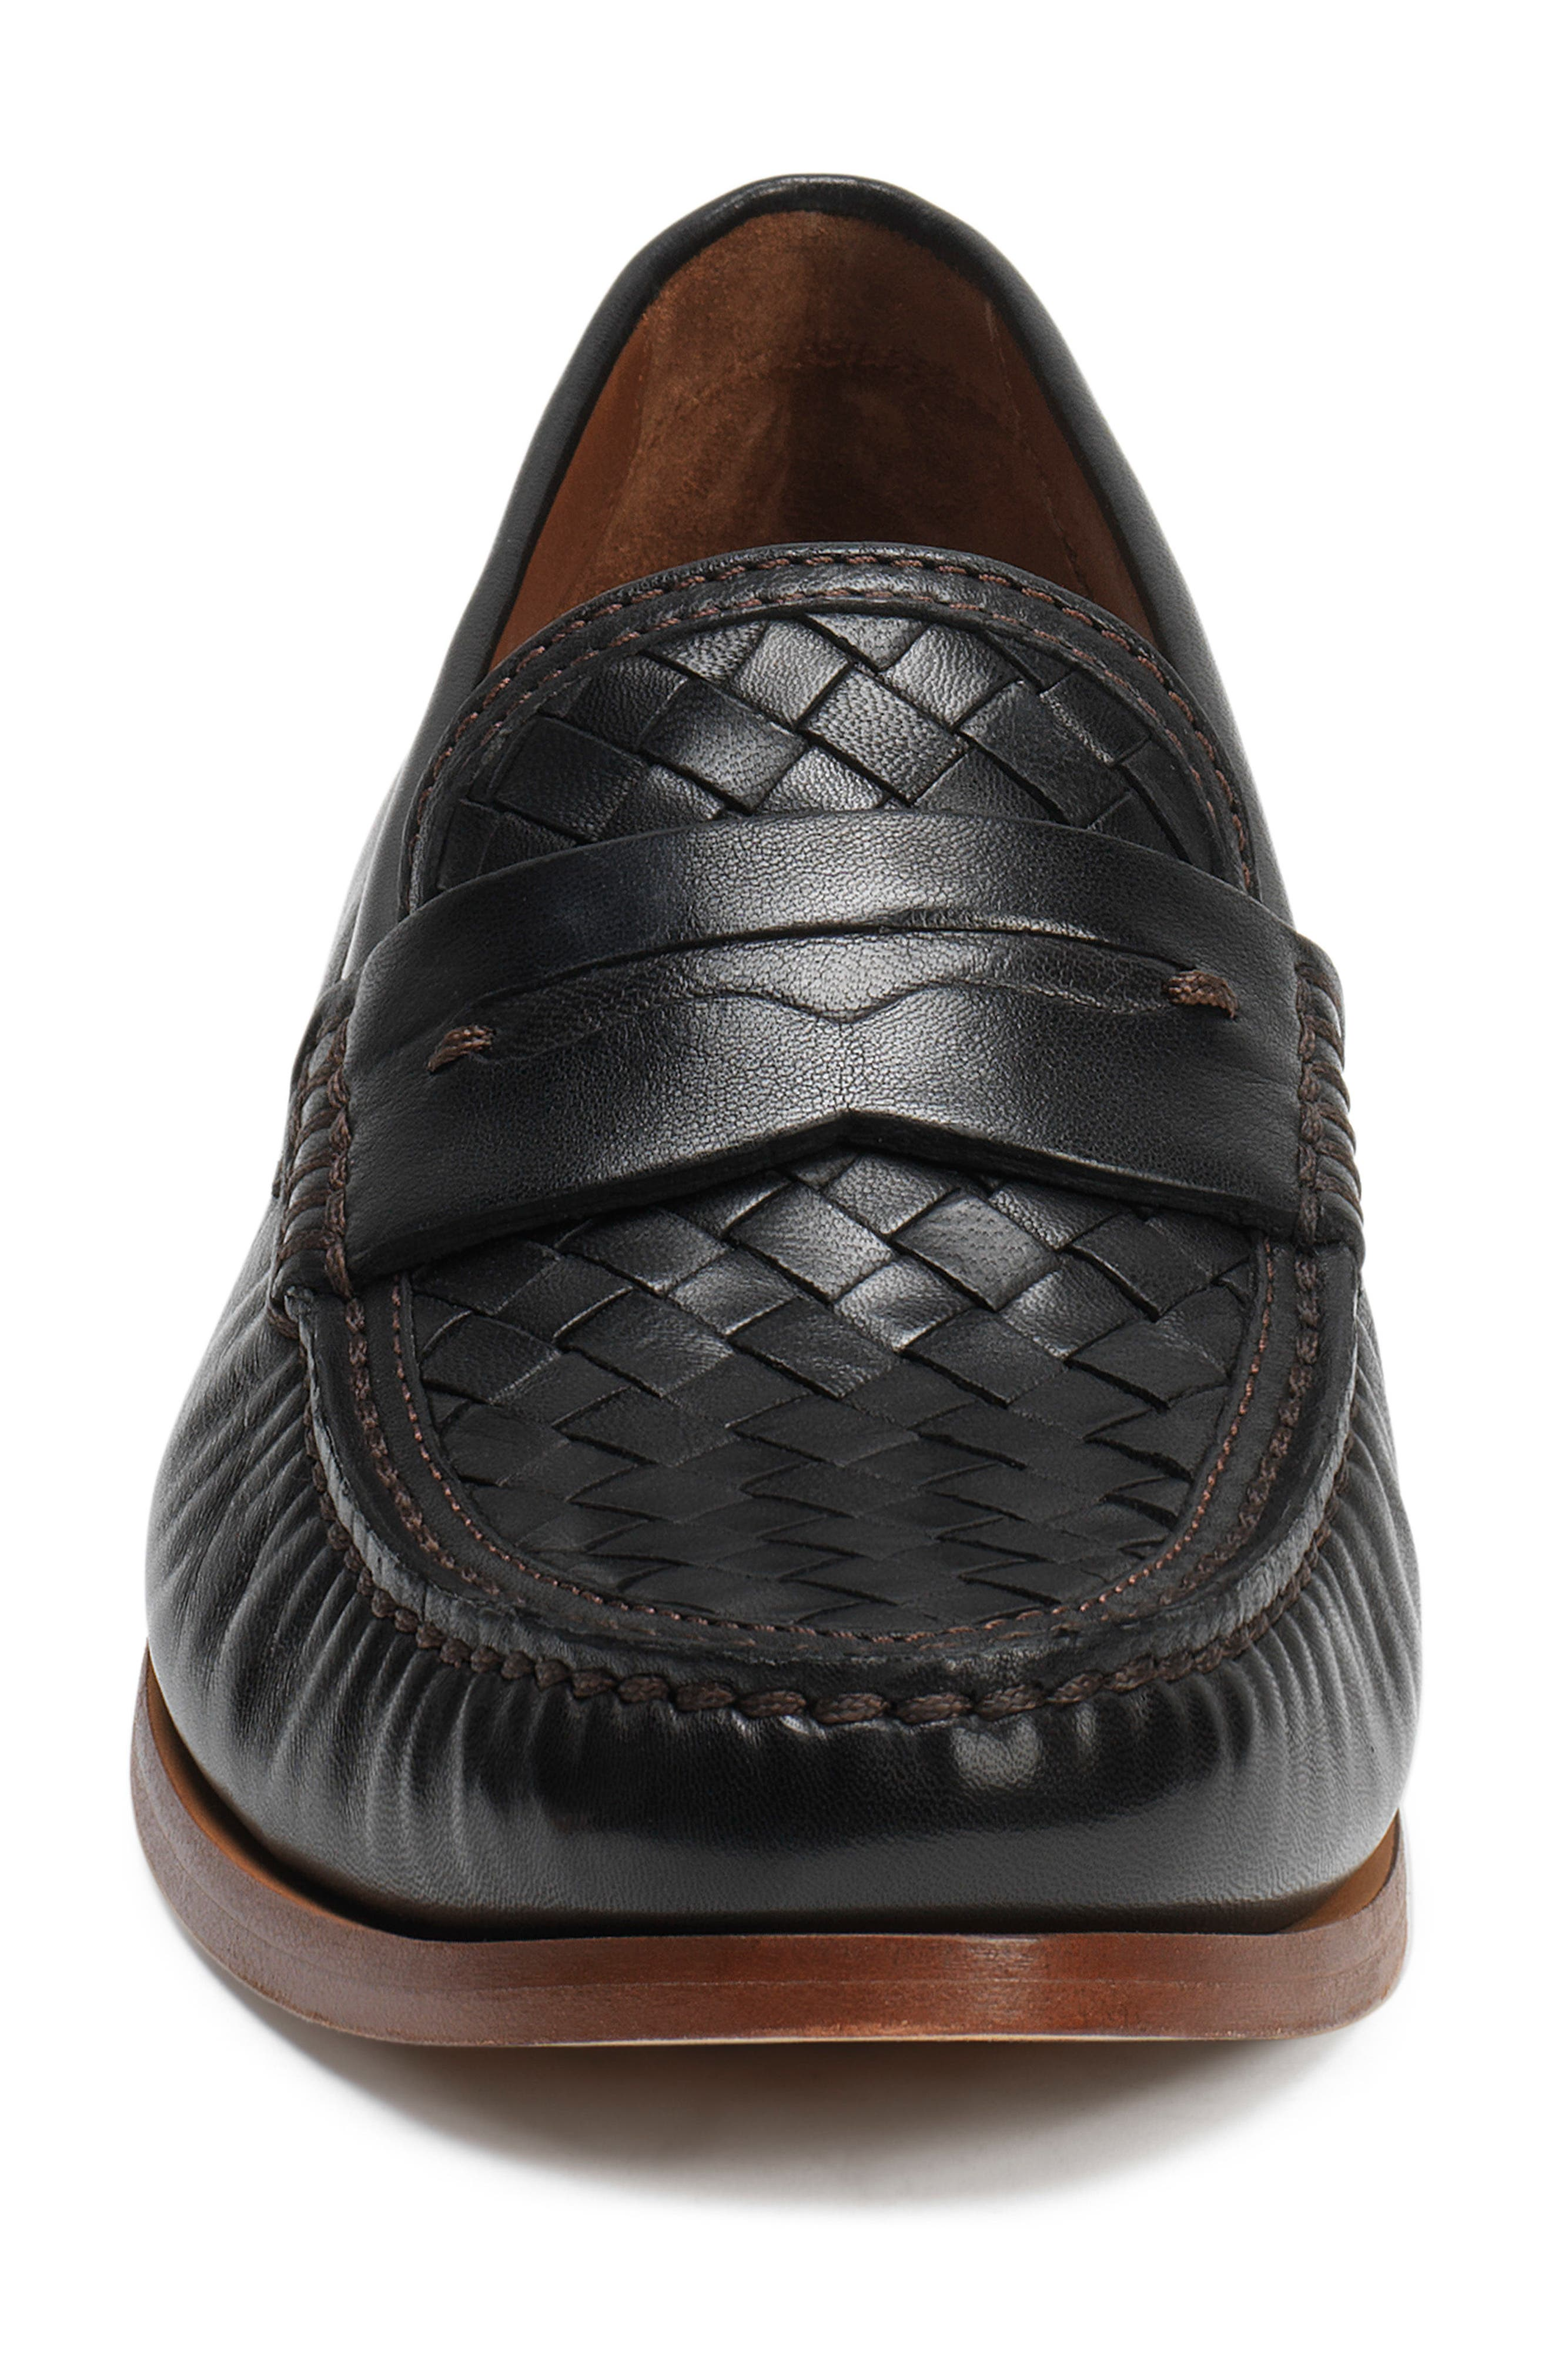 Slade Water Resistant Woven Penny Loafer,                             Alternate thumbnail 4, color,                             BLACK LEATHER